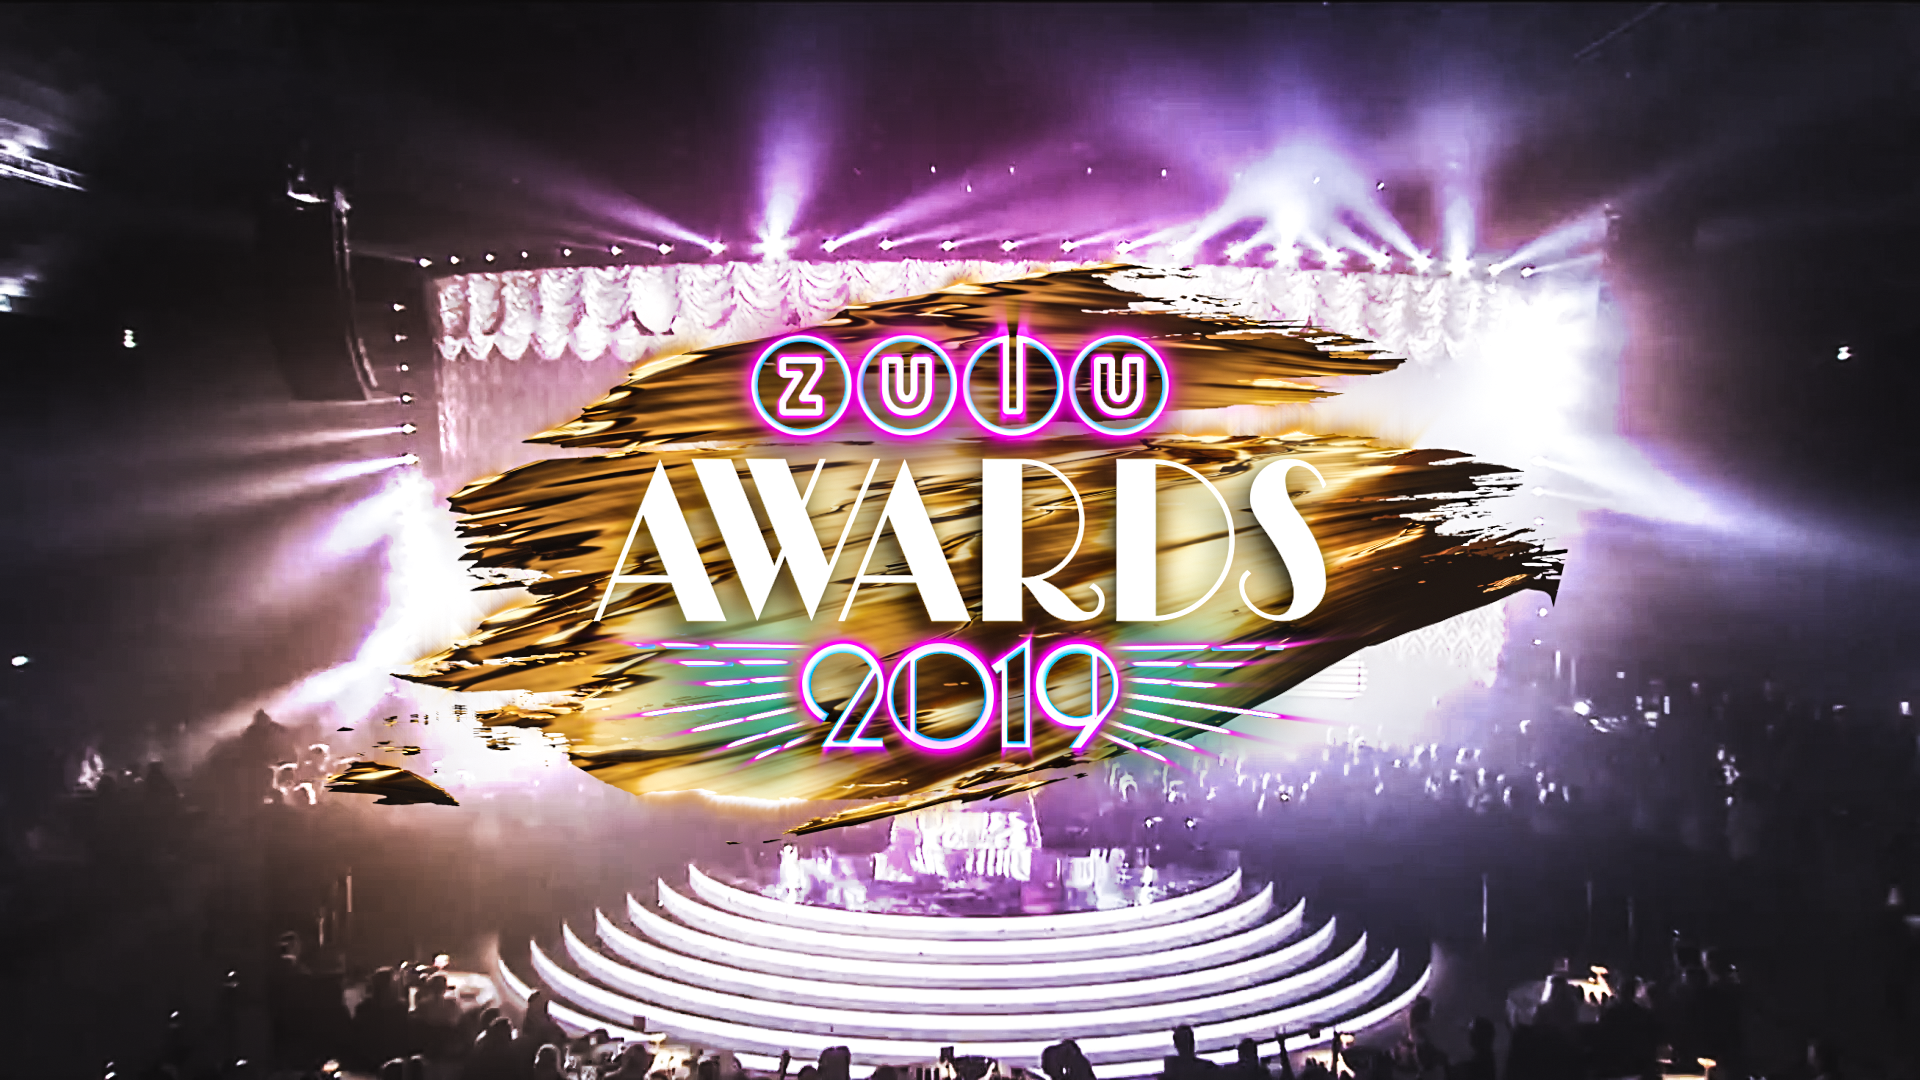 Zulu awards 2019